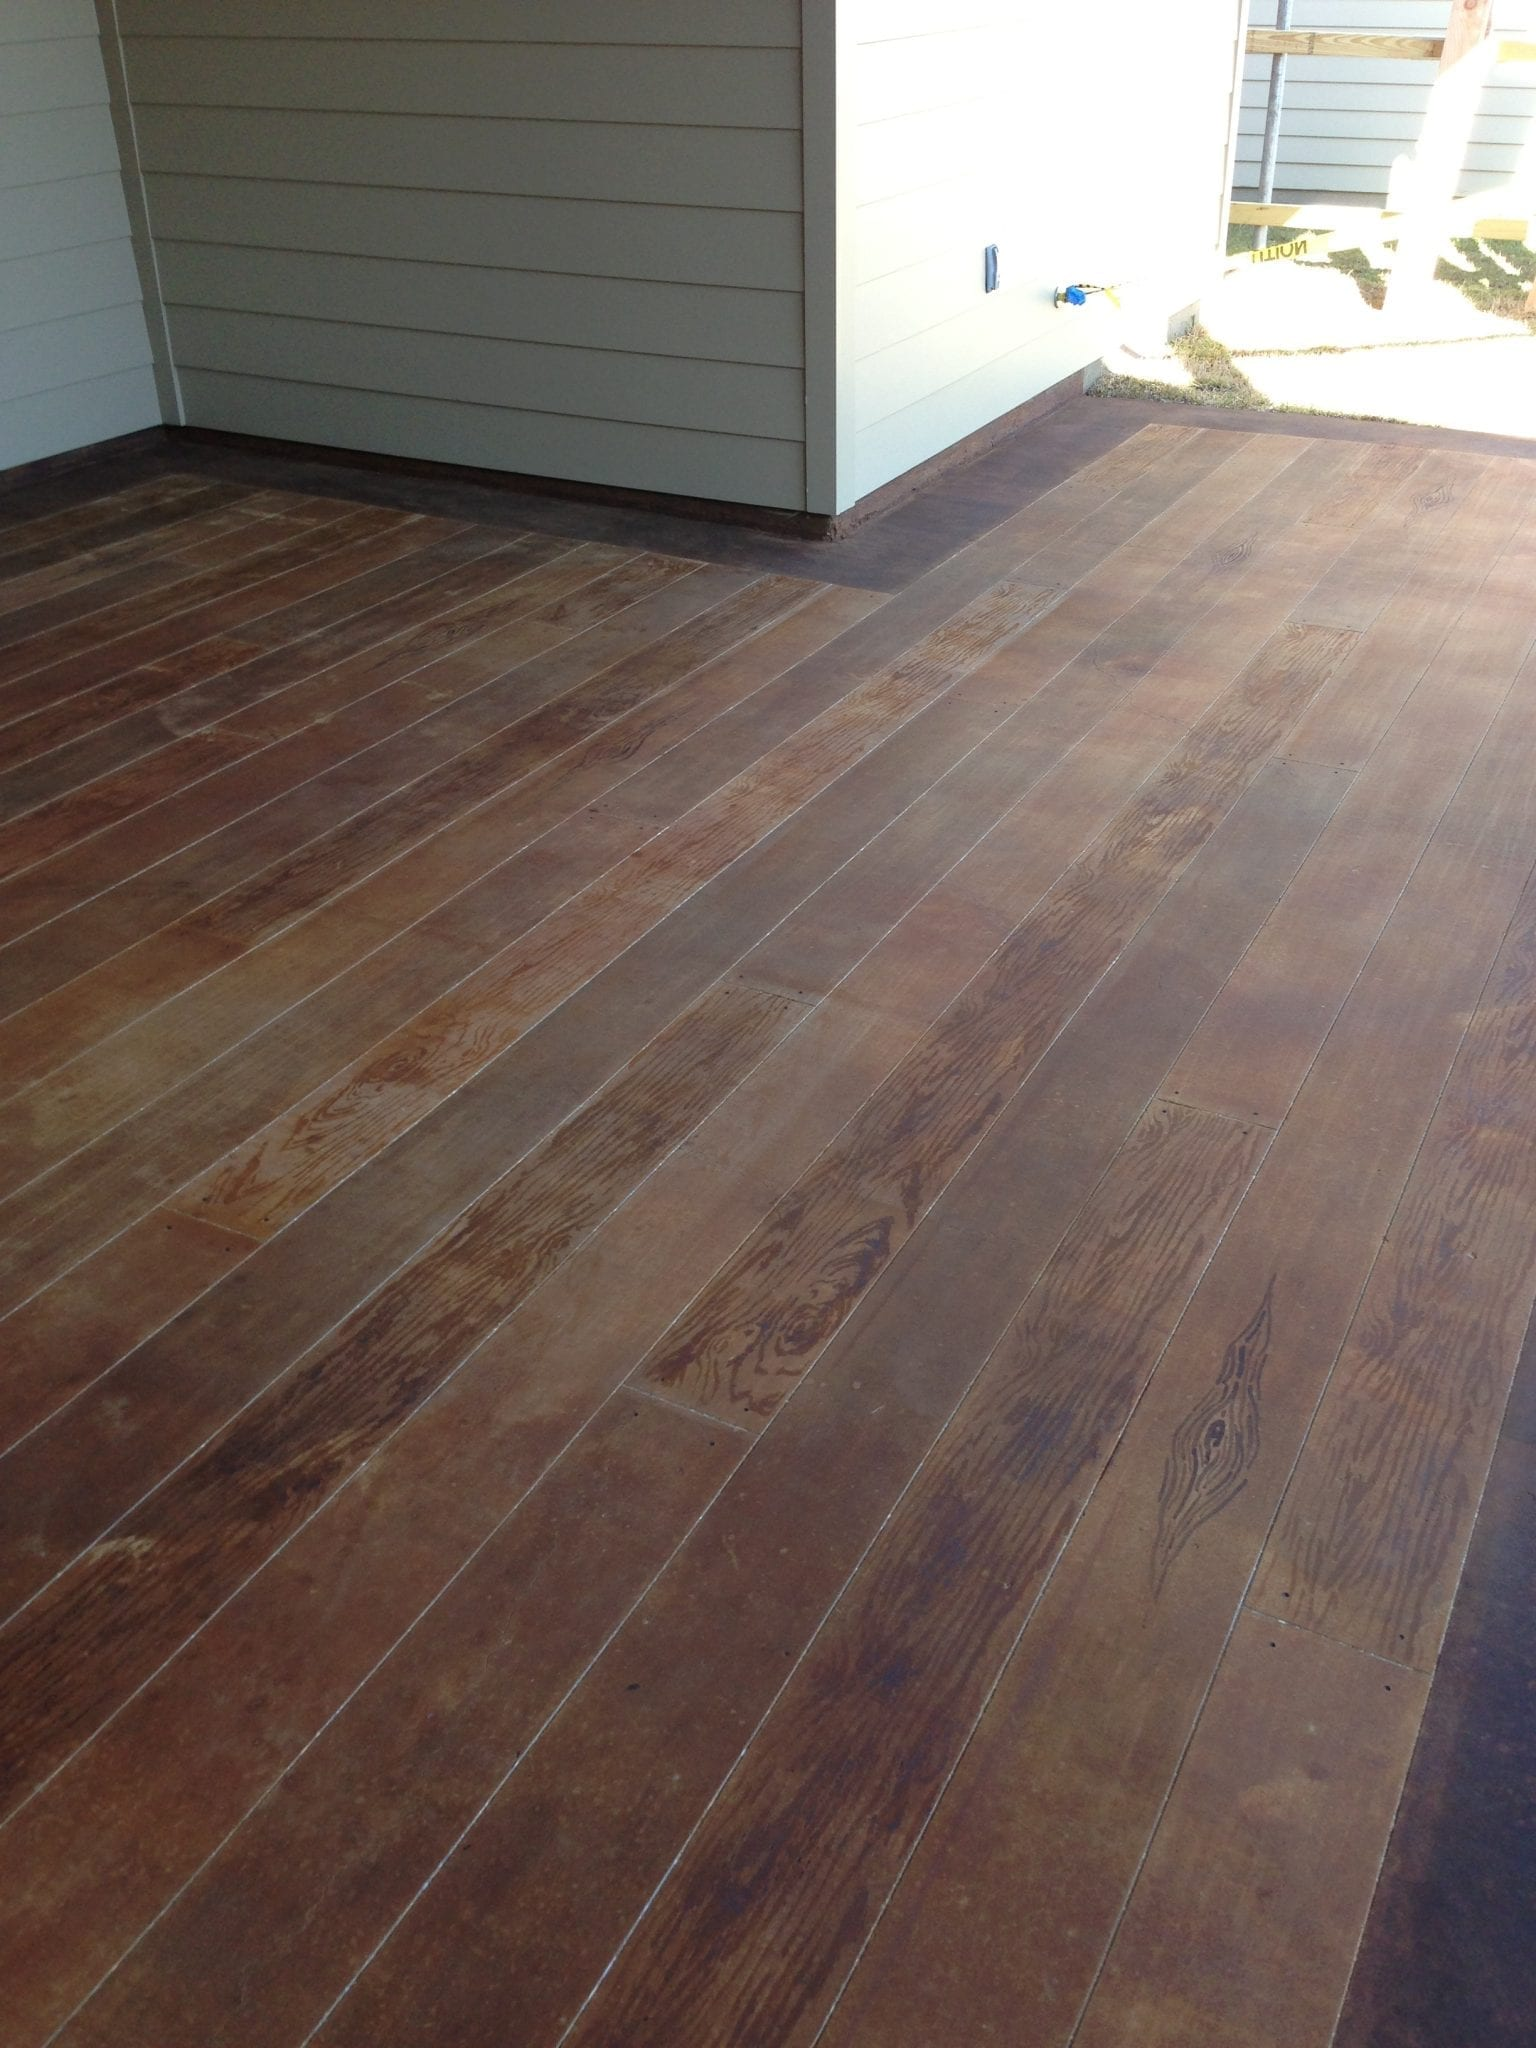 Concrete Wood Floors : Wood planks for outdoor concrete patio surecrete products